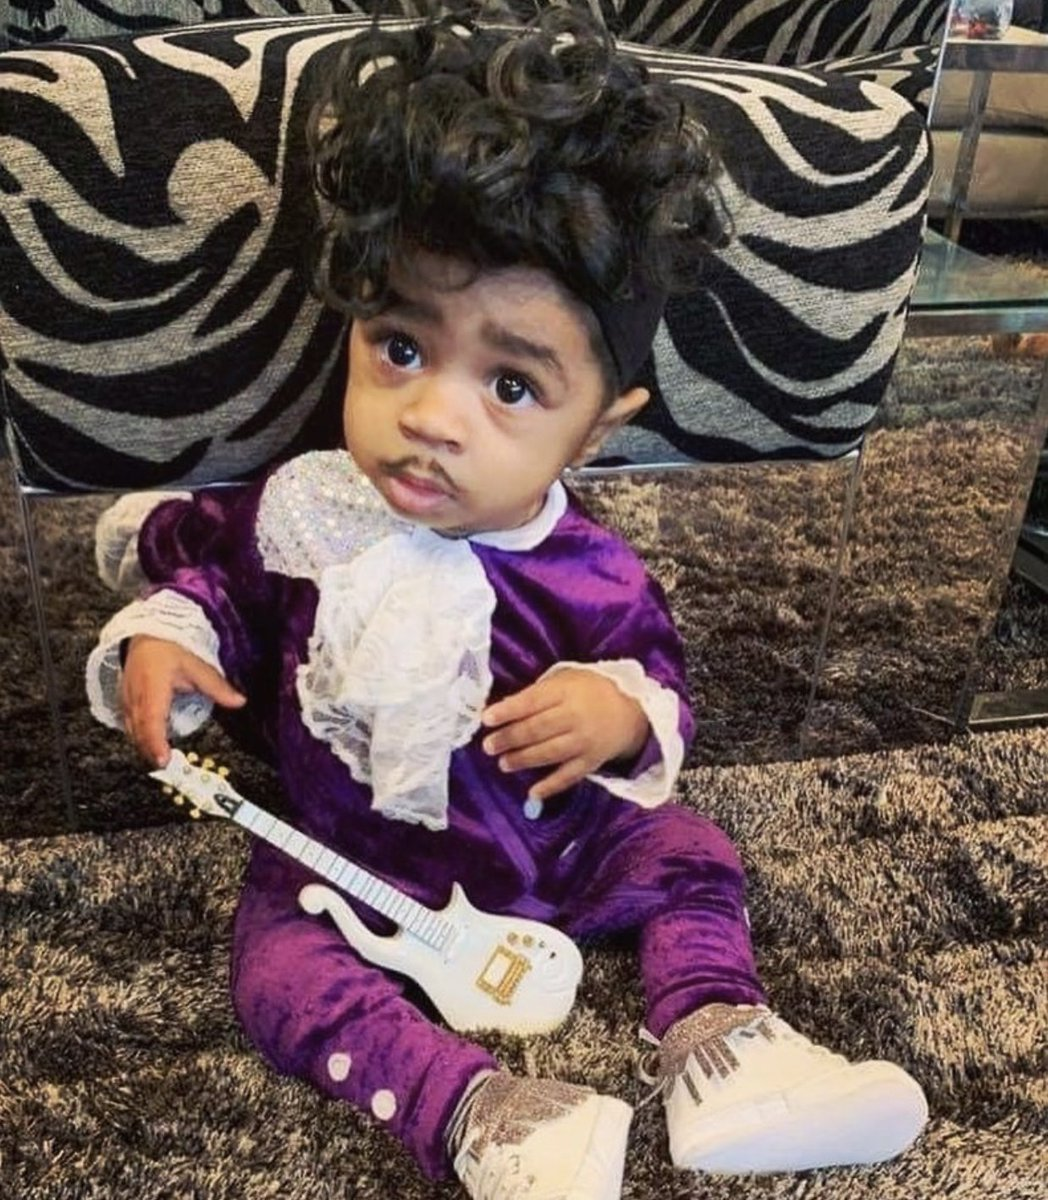 💜 FREE TICKETS 💜 The next .@RRPHKIDS event is coming up on SAT, 2/22, playing the music of #Prince for Kids.   Show up to the Bowl with your little one dressed in purple, and *TAG* @RRPHKIDS + .@BBowlVegas for a pair of #FREE tickets to another show.